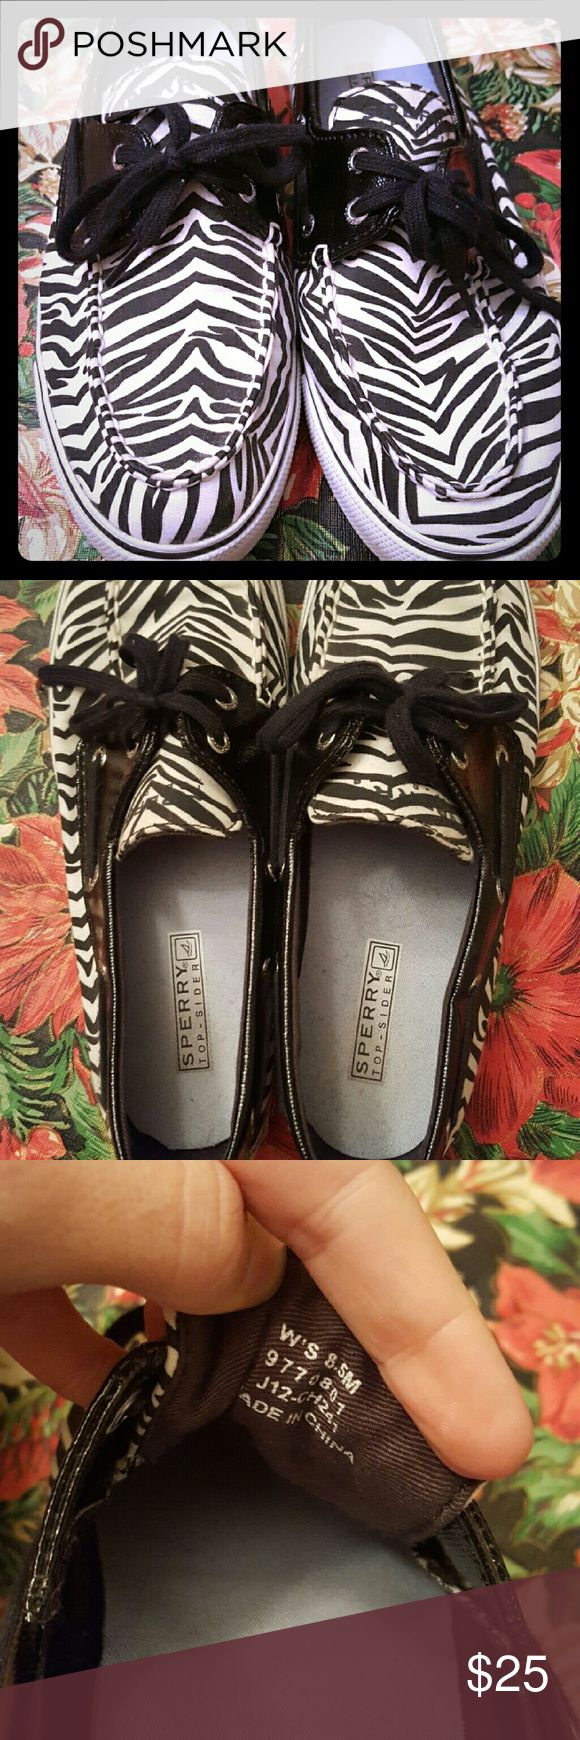 Sperrys Top Sider Women's Zebra Boat Shoes Sperrys boat shoes, very gently used, worn maybe 3 times, no rips or stains Sperry Top-Sider Shoes Espadrilles